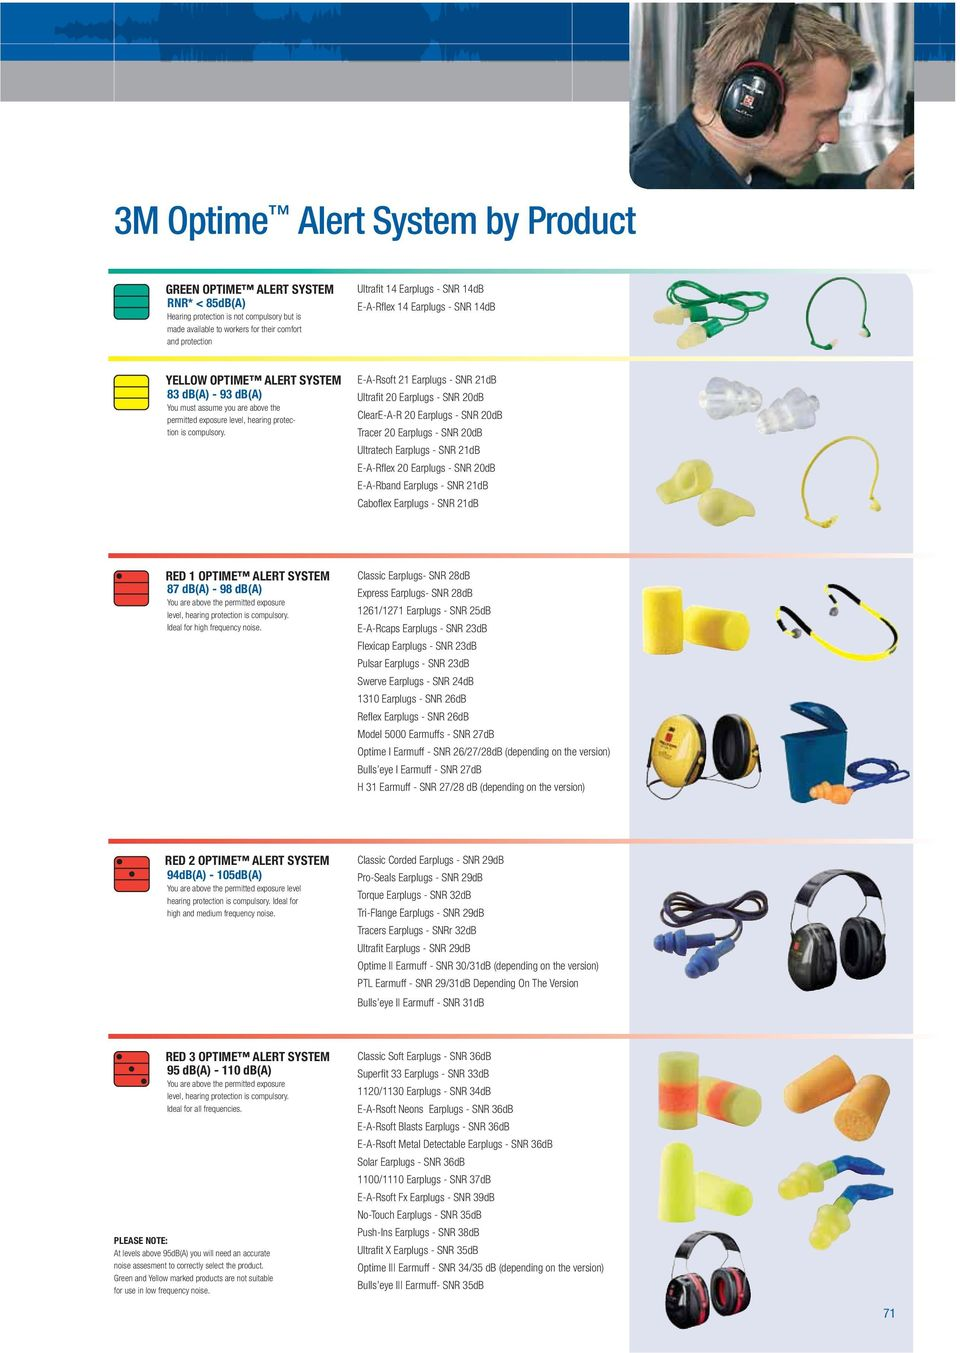 E-A-Rsoft 21 Earplugs - SNR 21dB Ultrafi t 20 Earplugs - SNR 20dB ClearE-A-R 20 Earplugs - SNR 20dB Tracer 20 Earplugs - SNR 20dB Ultratech Earplugs - SNR 21dB E-A-Rfl ex 20 Earplugs - SNR 20dB